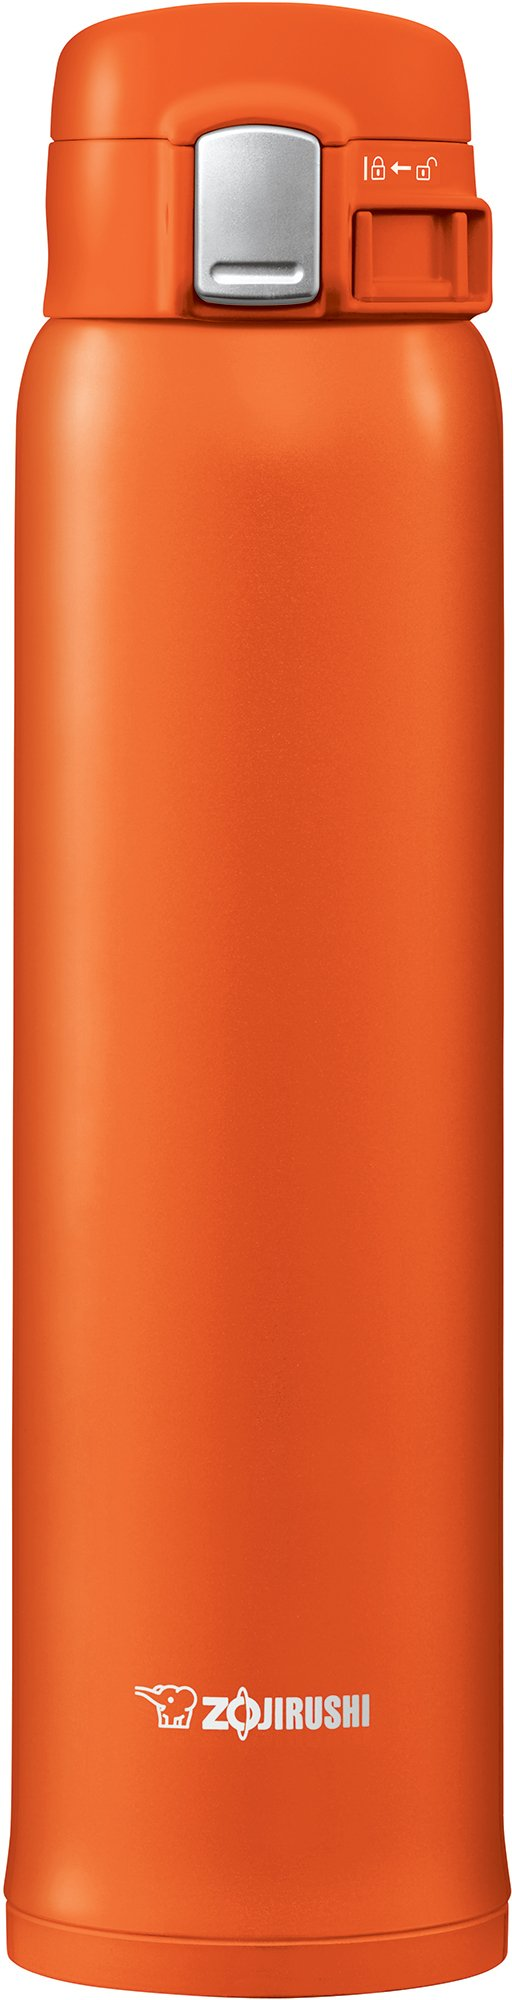 Zojirushi SM-SHE60DV Stainless Steel Mug, 20 ounce, Vivid Orange by Zojirushi